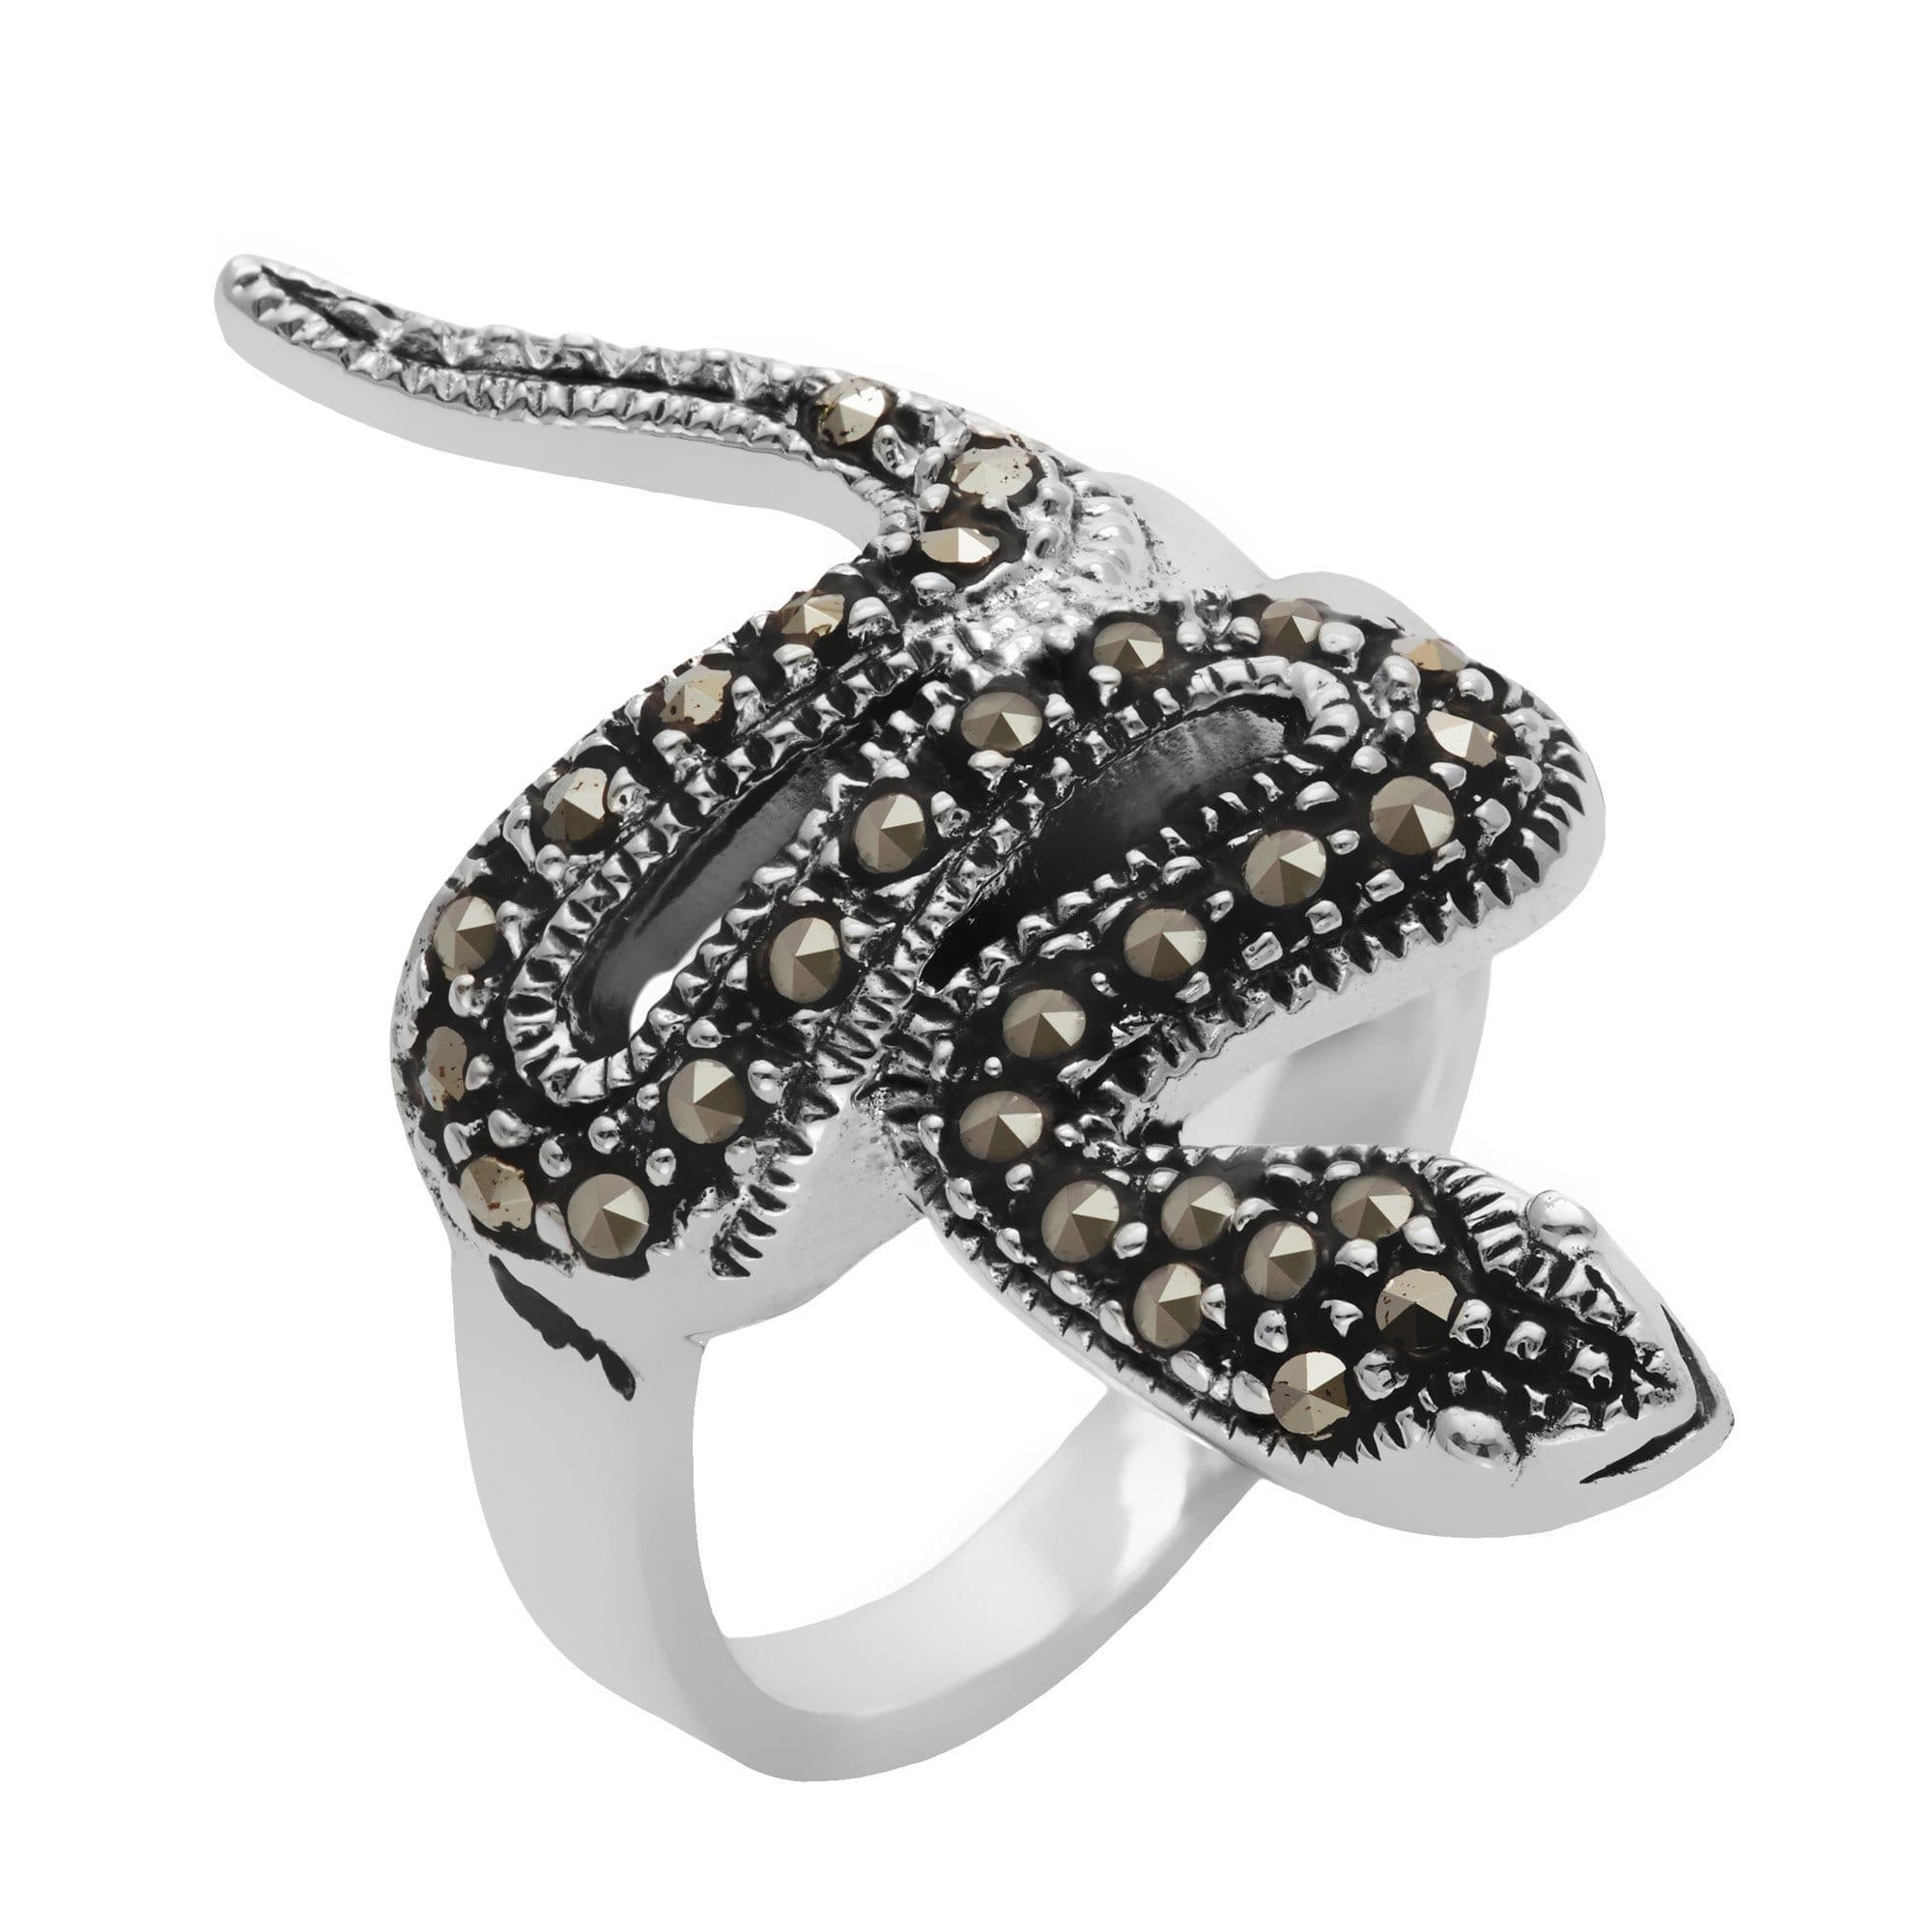 irish c double gold trinity knot authentic r marcasite ring jewellery dublin mccormack celtic rings shop white